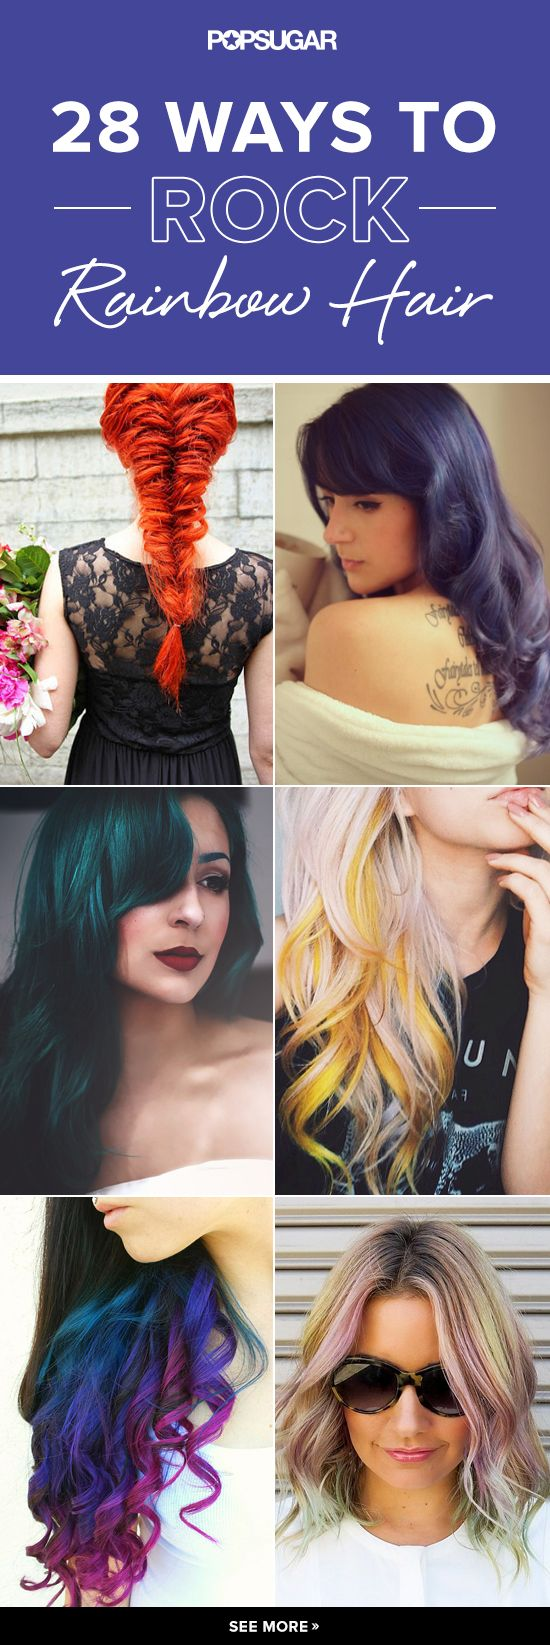 28 Real Girls Prove Anyone Can Rock Rainbow-Bright Hair